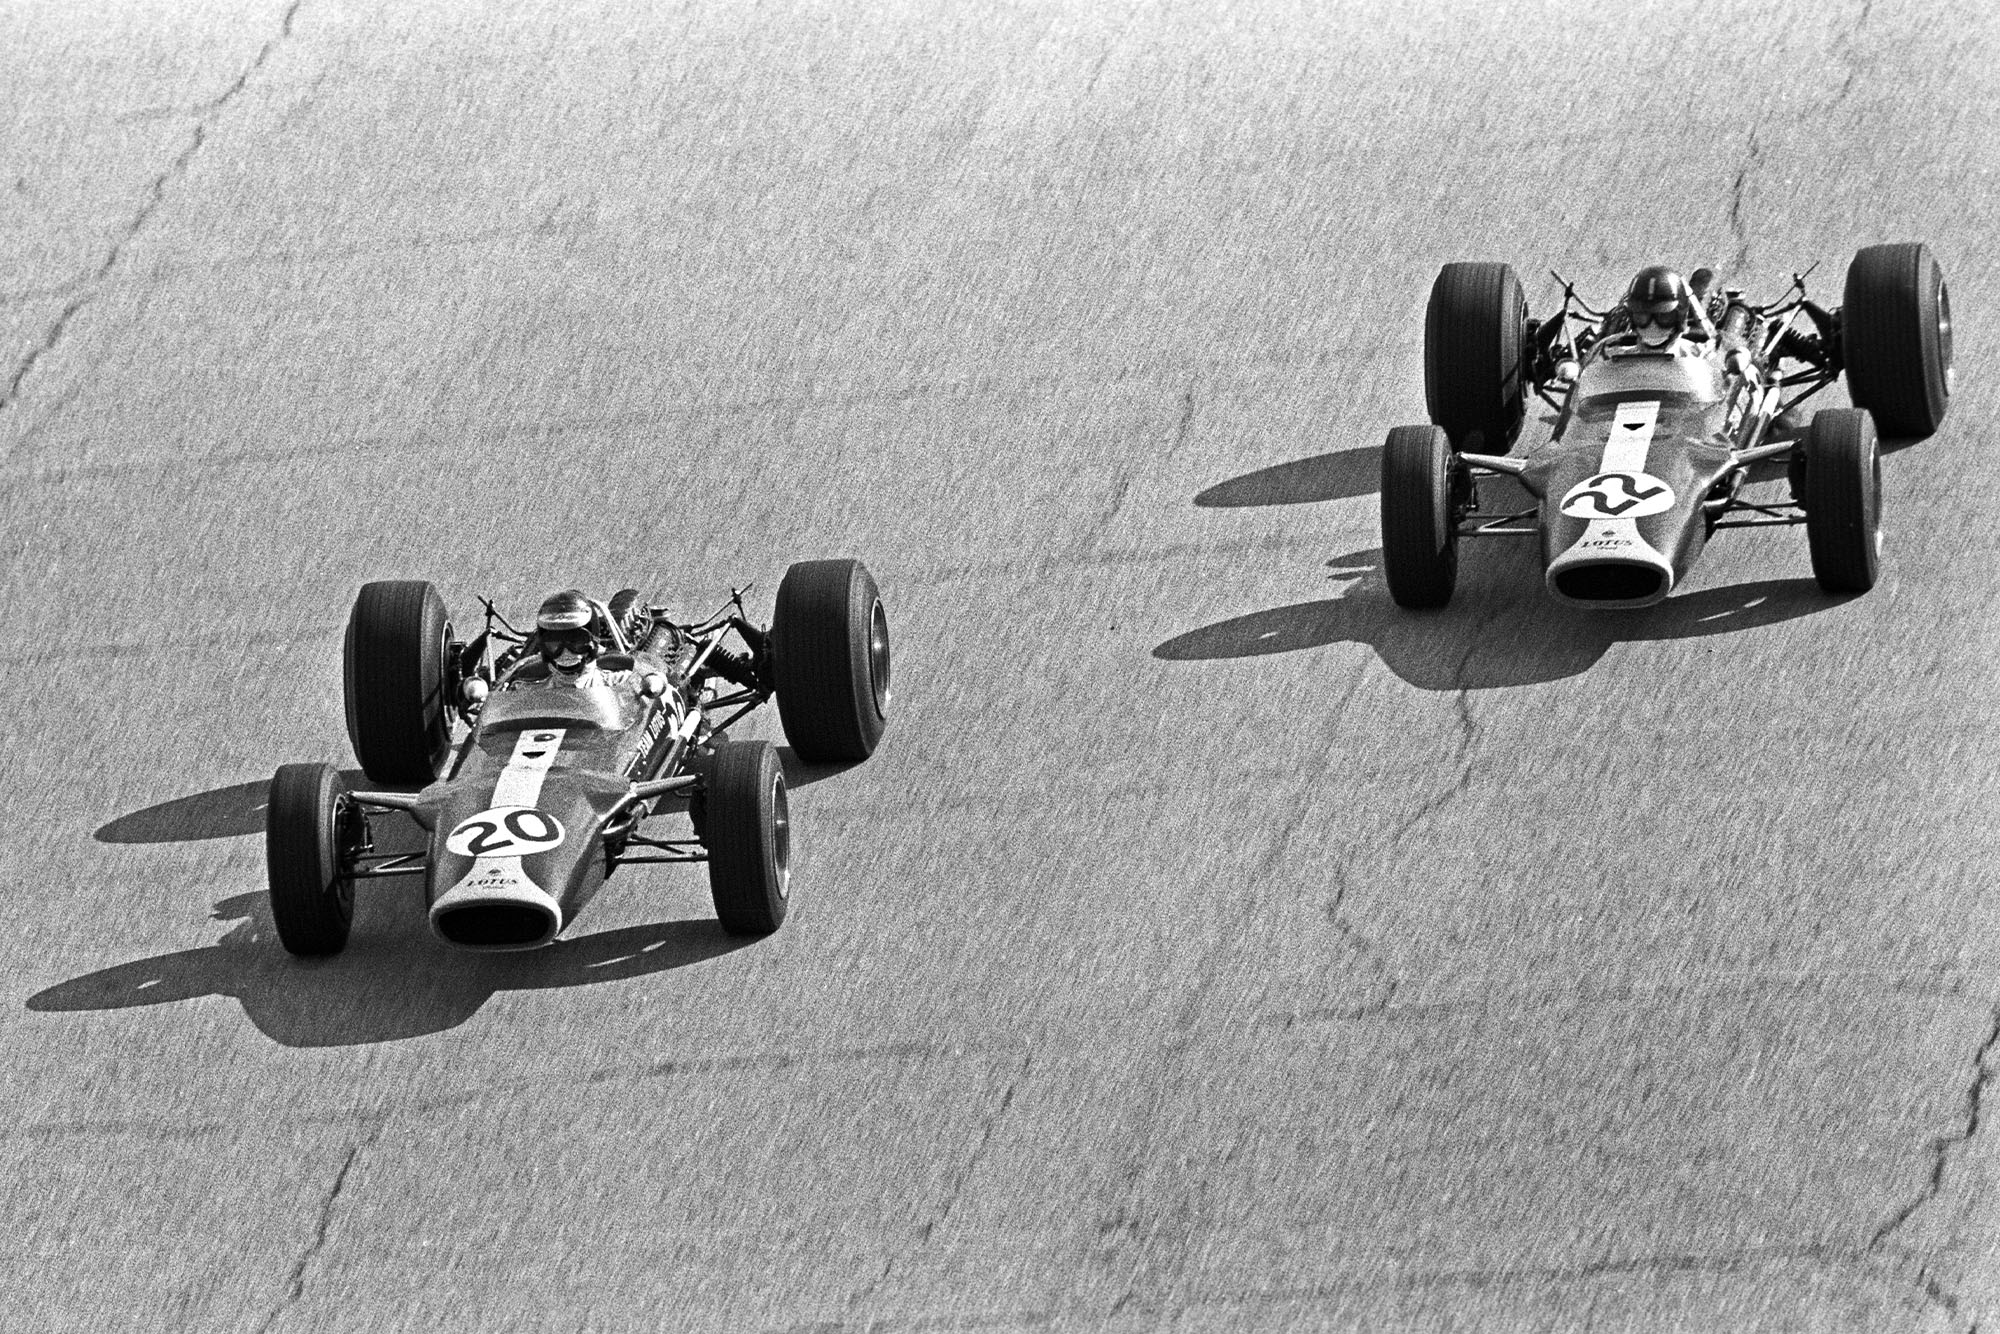 Jim Clark and Graham Hill in the 1967 Italian Grand Prix at Monza